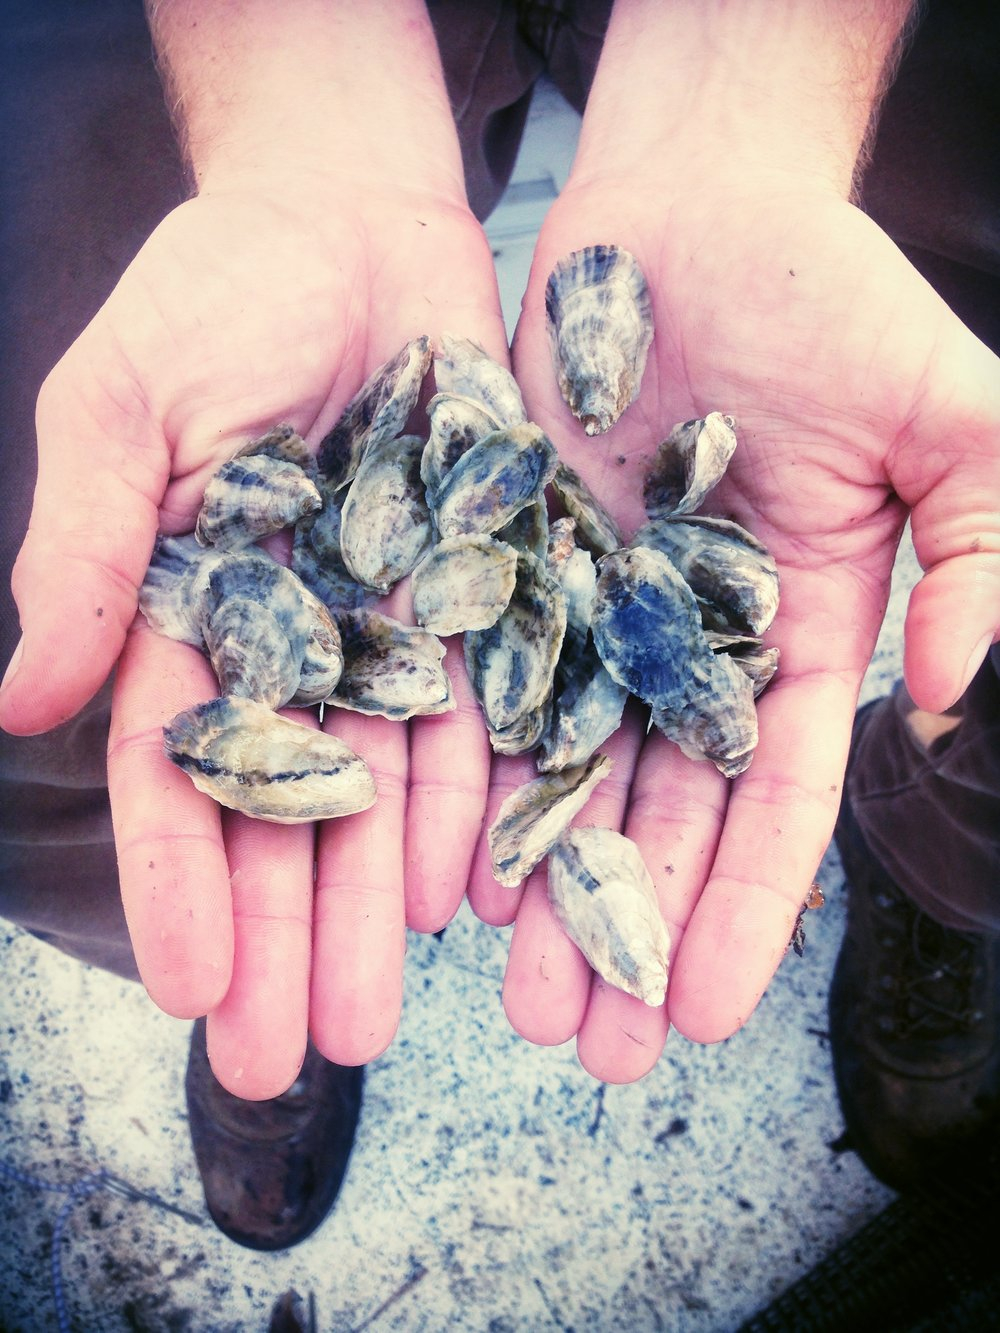 Our first batch of local oysters! These singles are barely 8 months old. Perfect lips and already forming into little cups! Visit our  gallery  to see more!